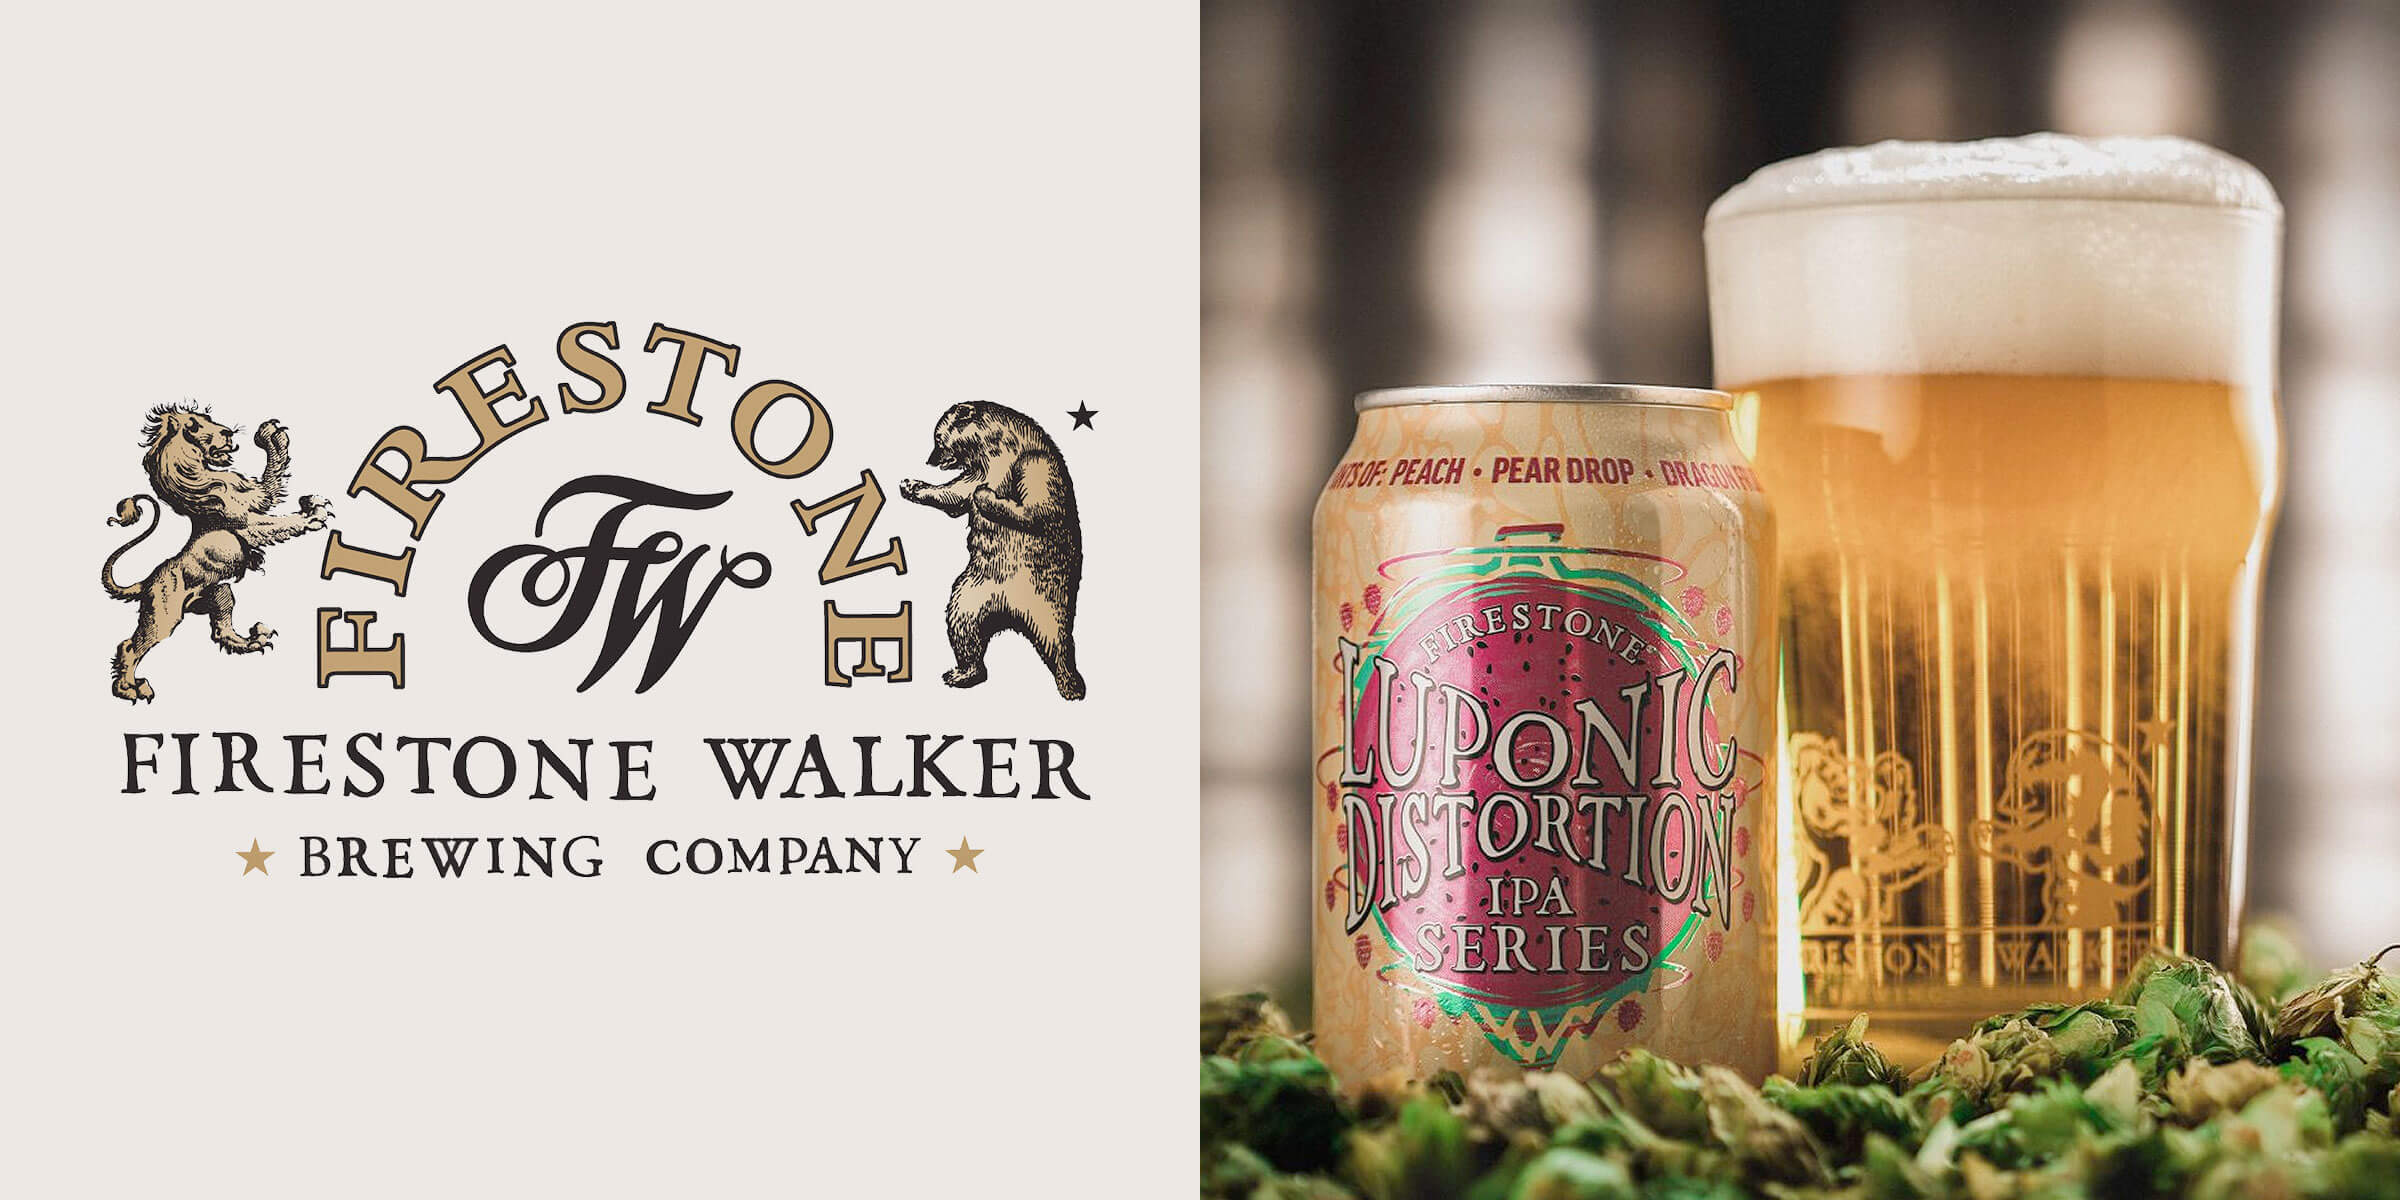 Firestone Walker Brewing Company released Luponic Distortion IPA No. 16 with six hops from three continents for flavors of peach, pear drop and dragonfruit.